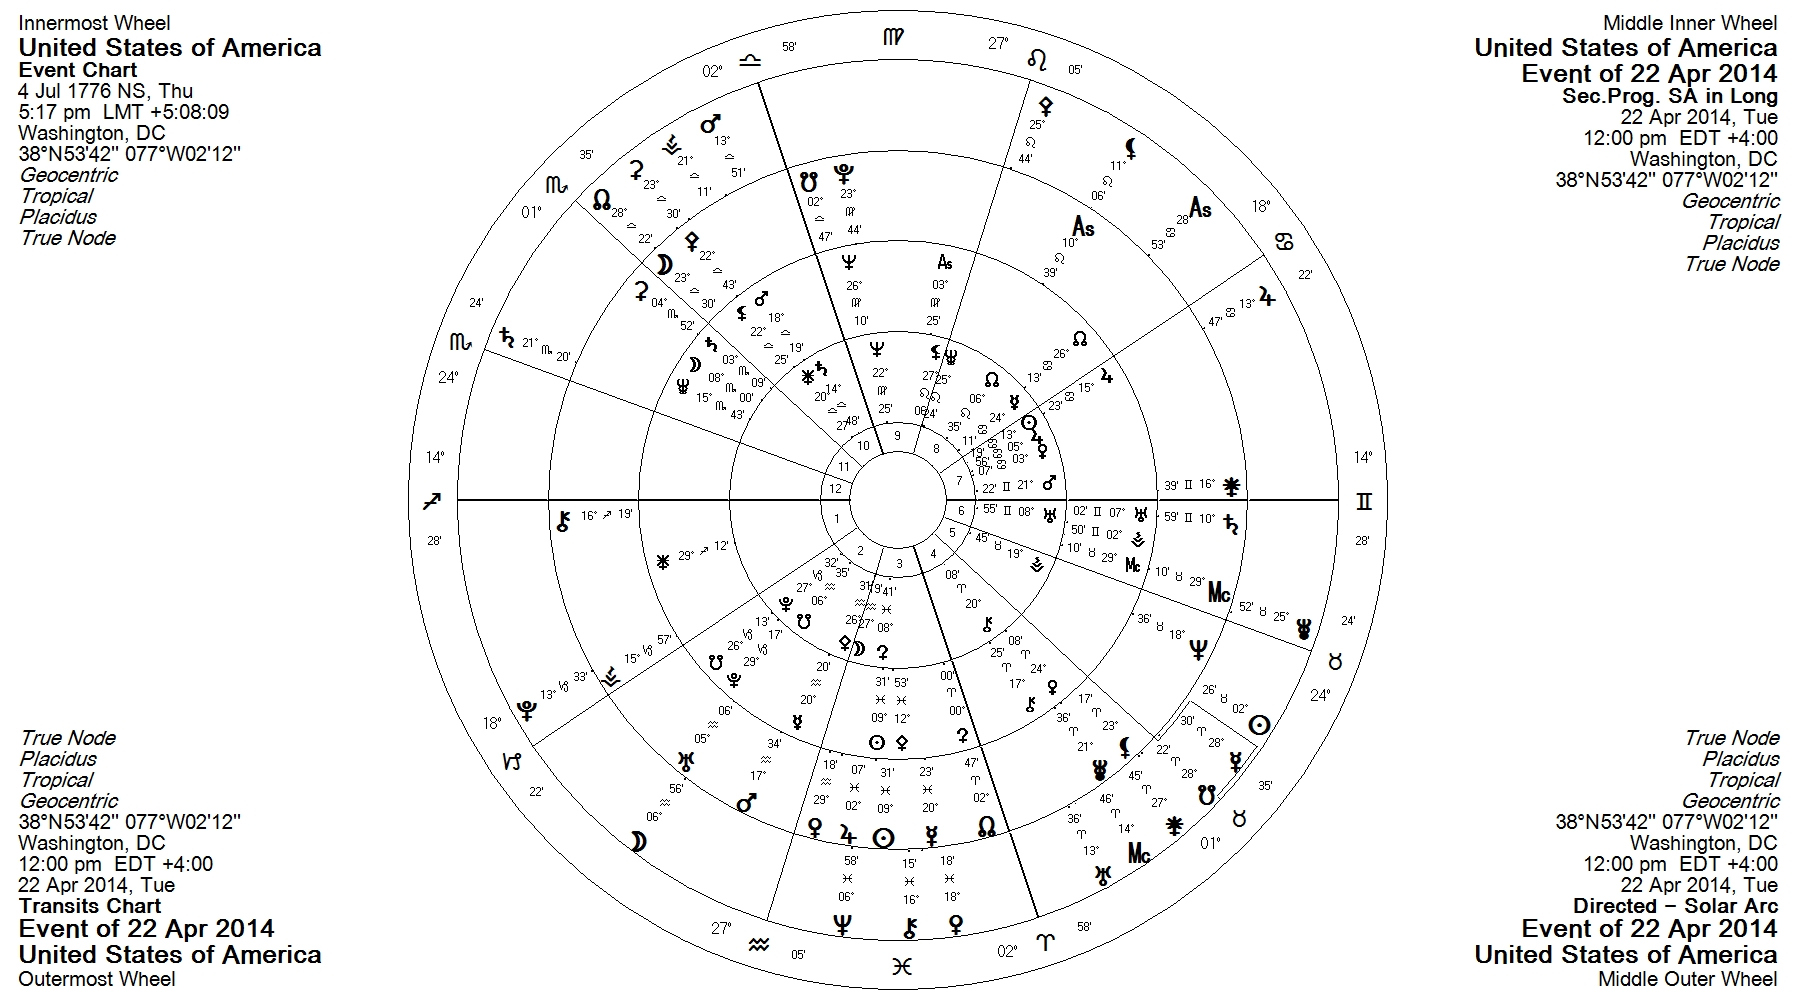 Cancer 2012 homeless usa pluto uranus japan assange sabian symbols for 14 degrees of the cardinal cross10 the following symbols are self explanatory and may invoke intuitional insights buycottarizona